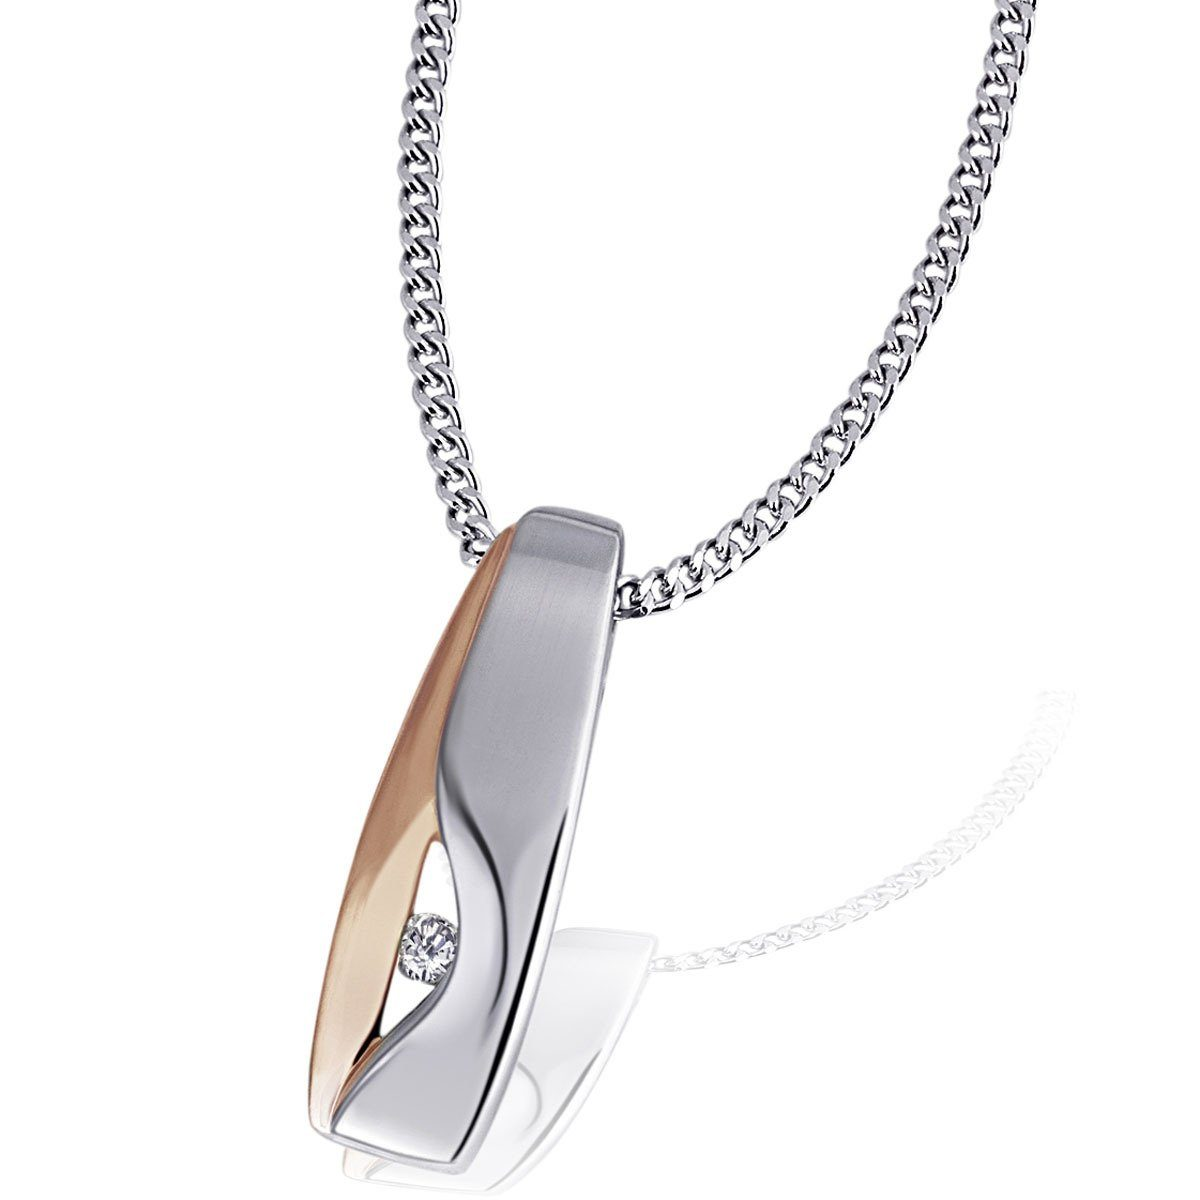 goldmaid Collier 925 Sterlingsilber 1 Zirkonia